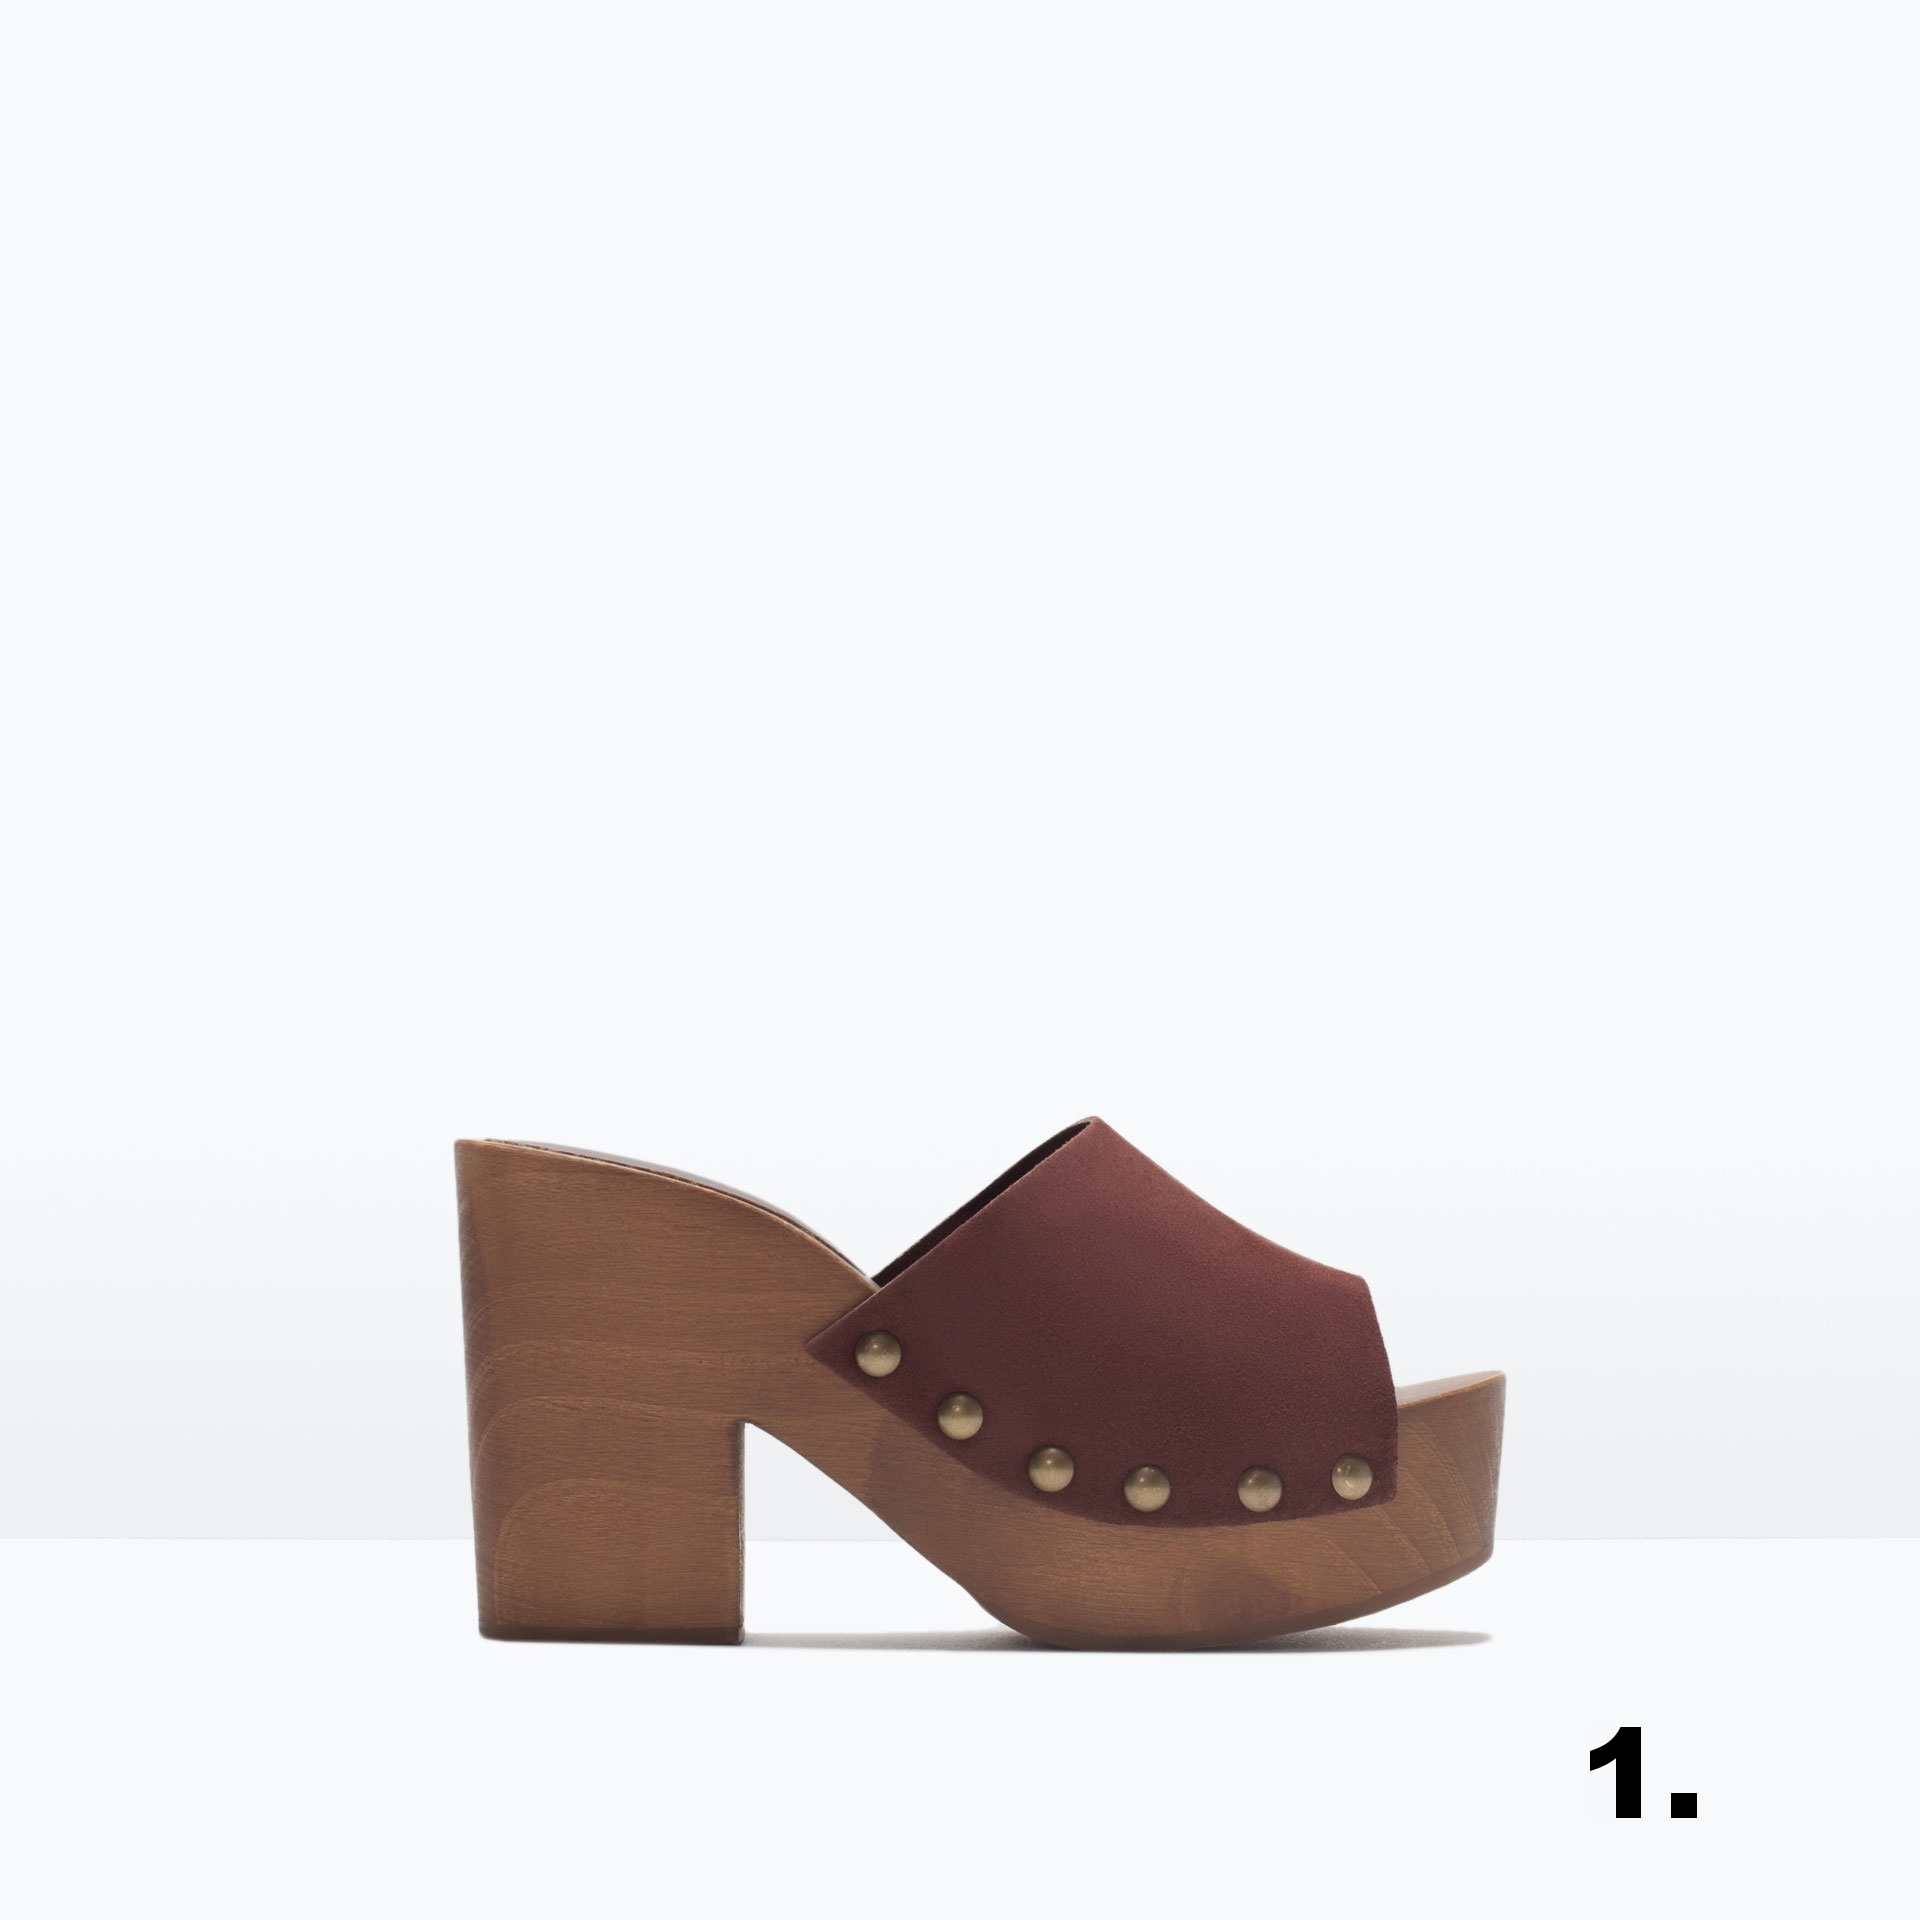 zara-brick-leather-studded-clogs-product-1-390556261-normal.jpeg